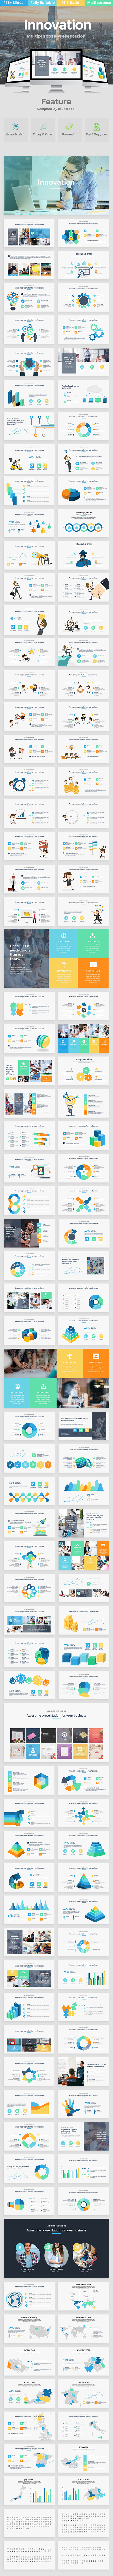 Innovation Company Business Powerpoint Template - Business PowerPoint Templates